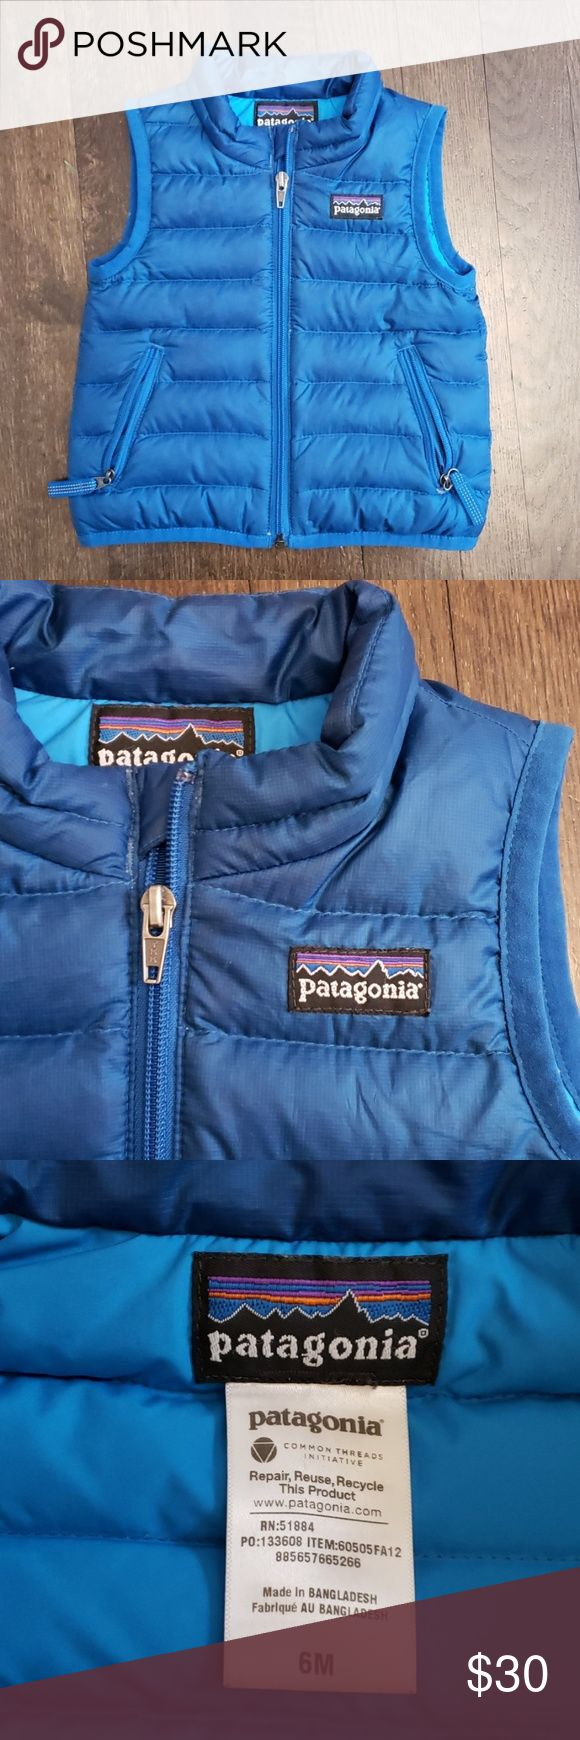 Patagonia baby puffer vest Baby patagonia, Puffer vest